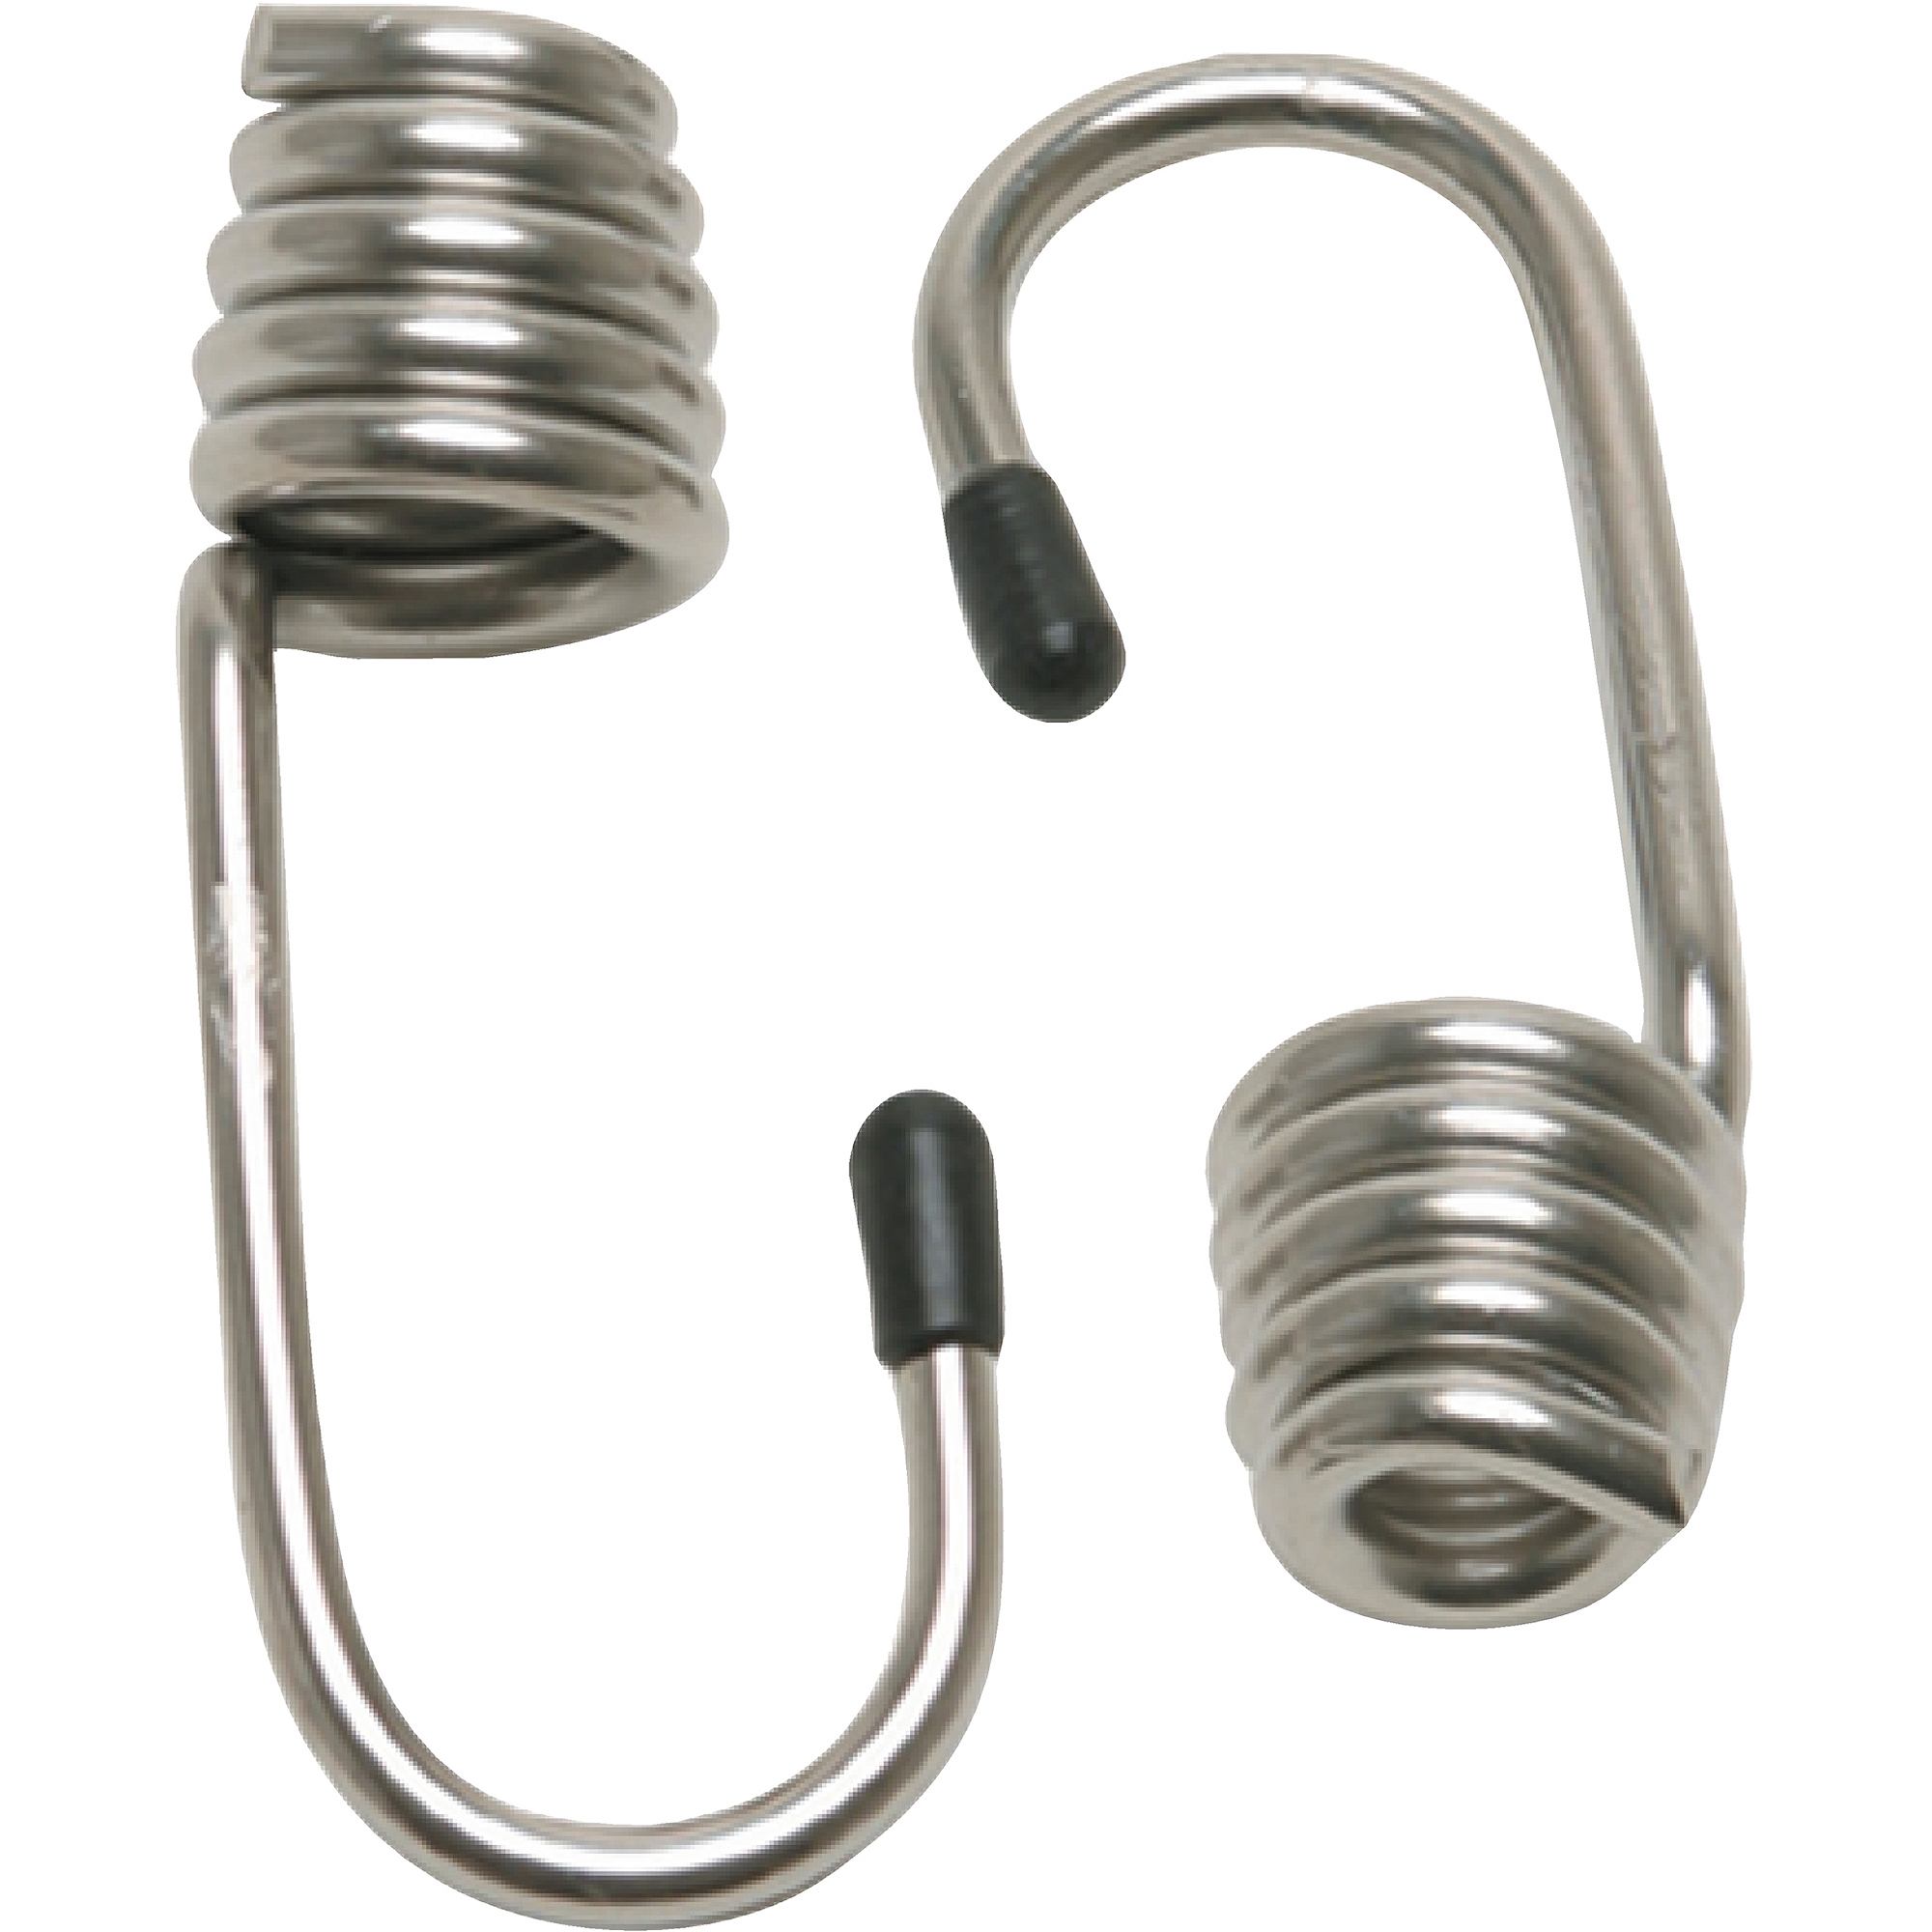 """CargoBuckle Stainless Steel Stretch Cord Hooks, 5/16"""", 2pk"""